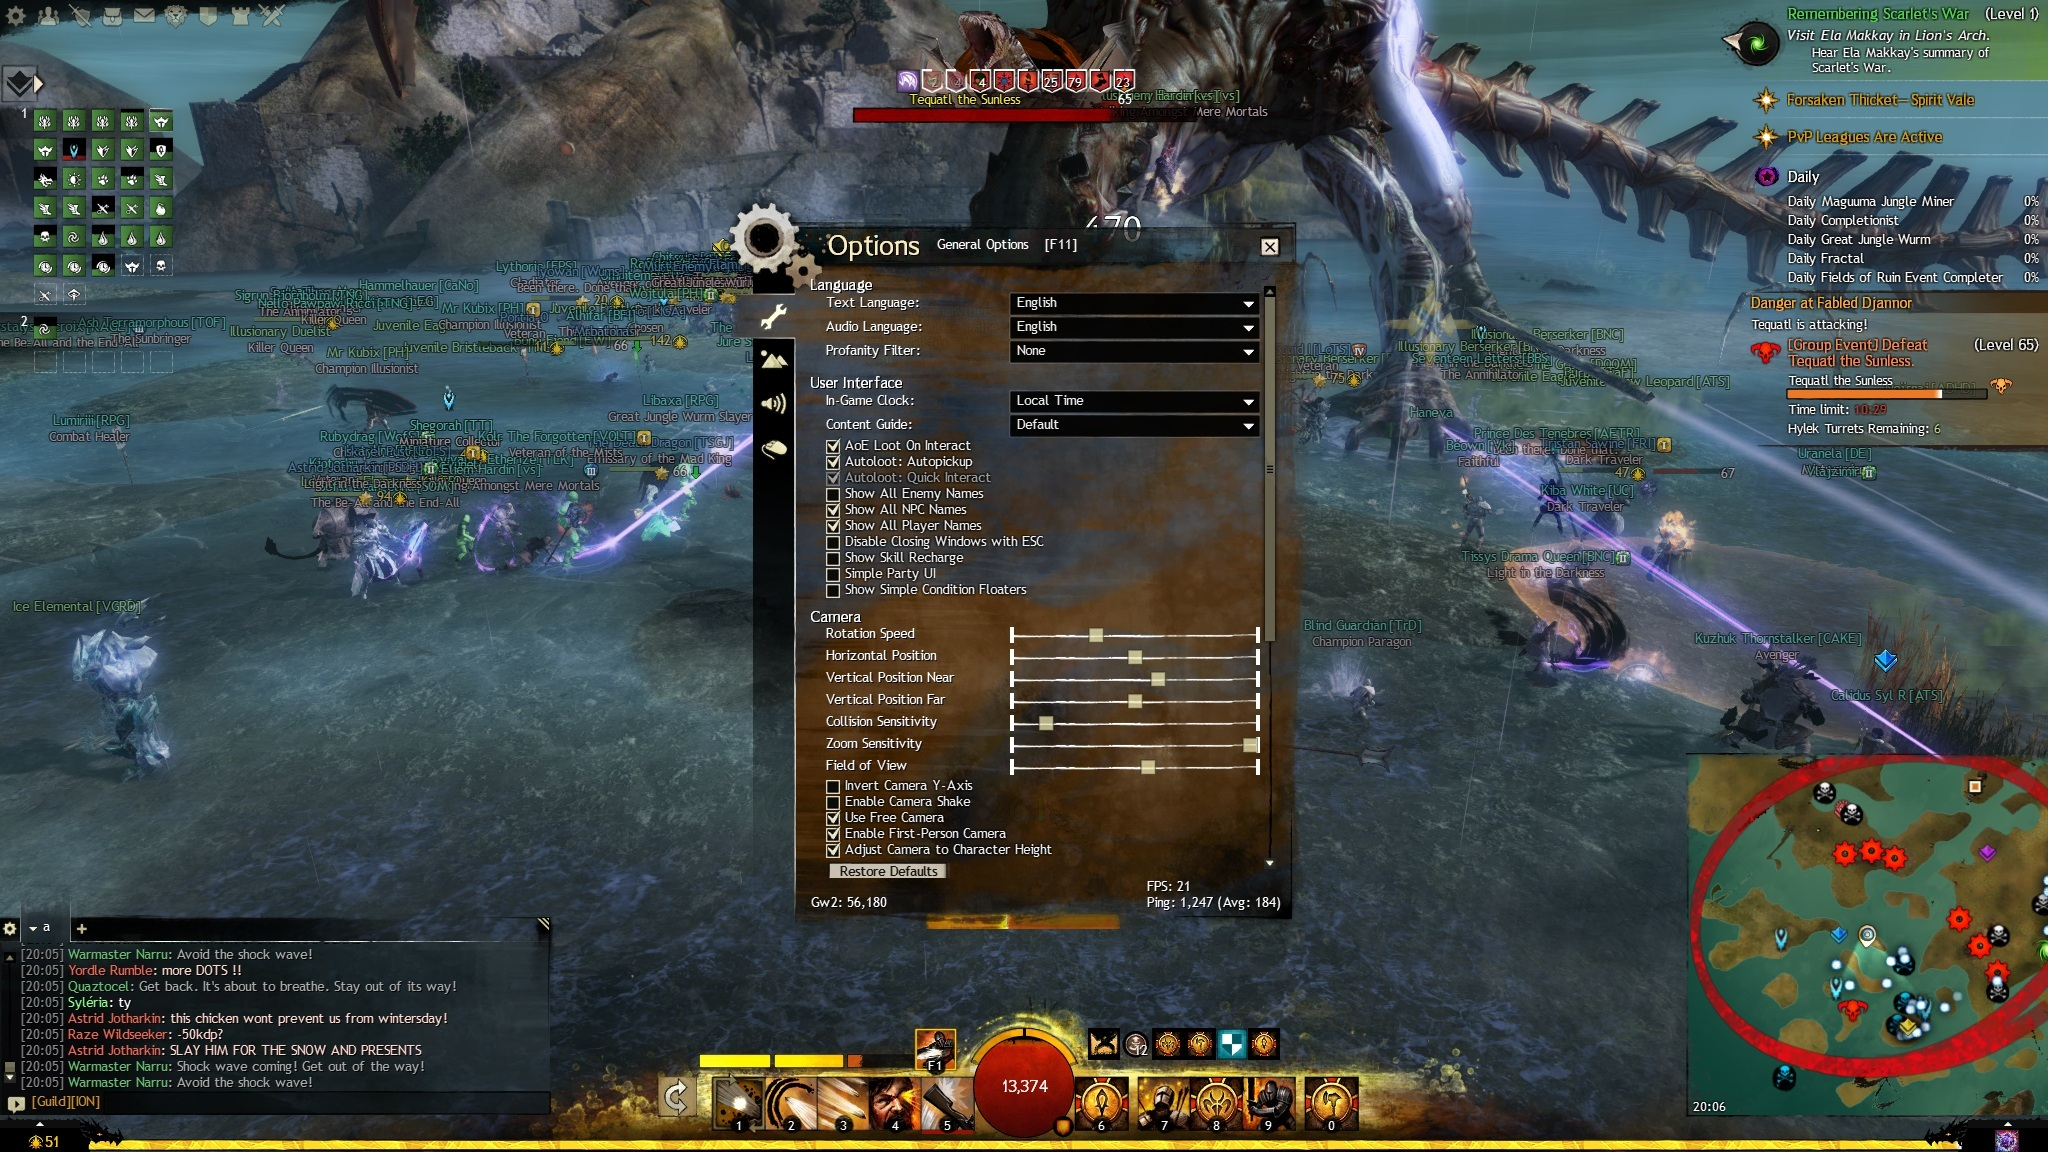 Guild Wars 2 Forum - Account & Technical Support